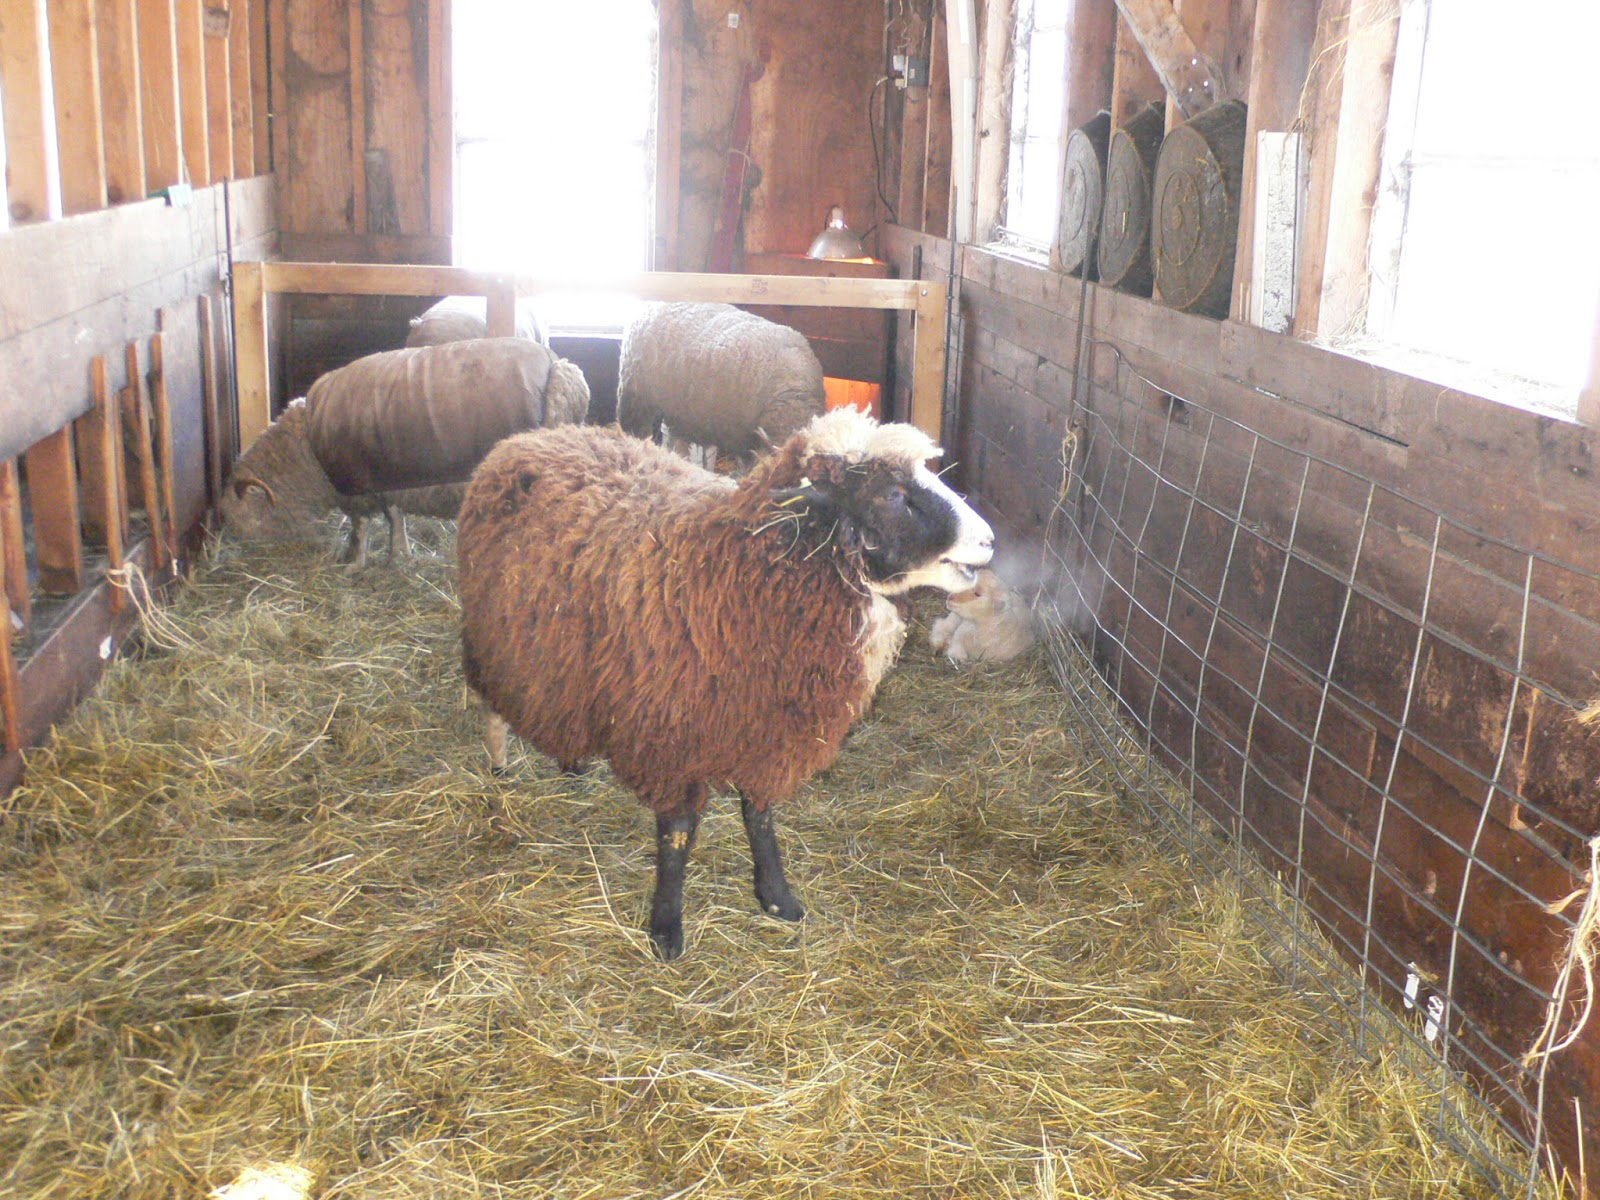 Ewe & I Farm: More sheep and lamb pictures